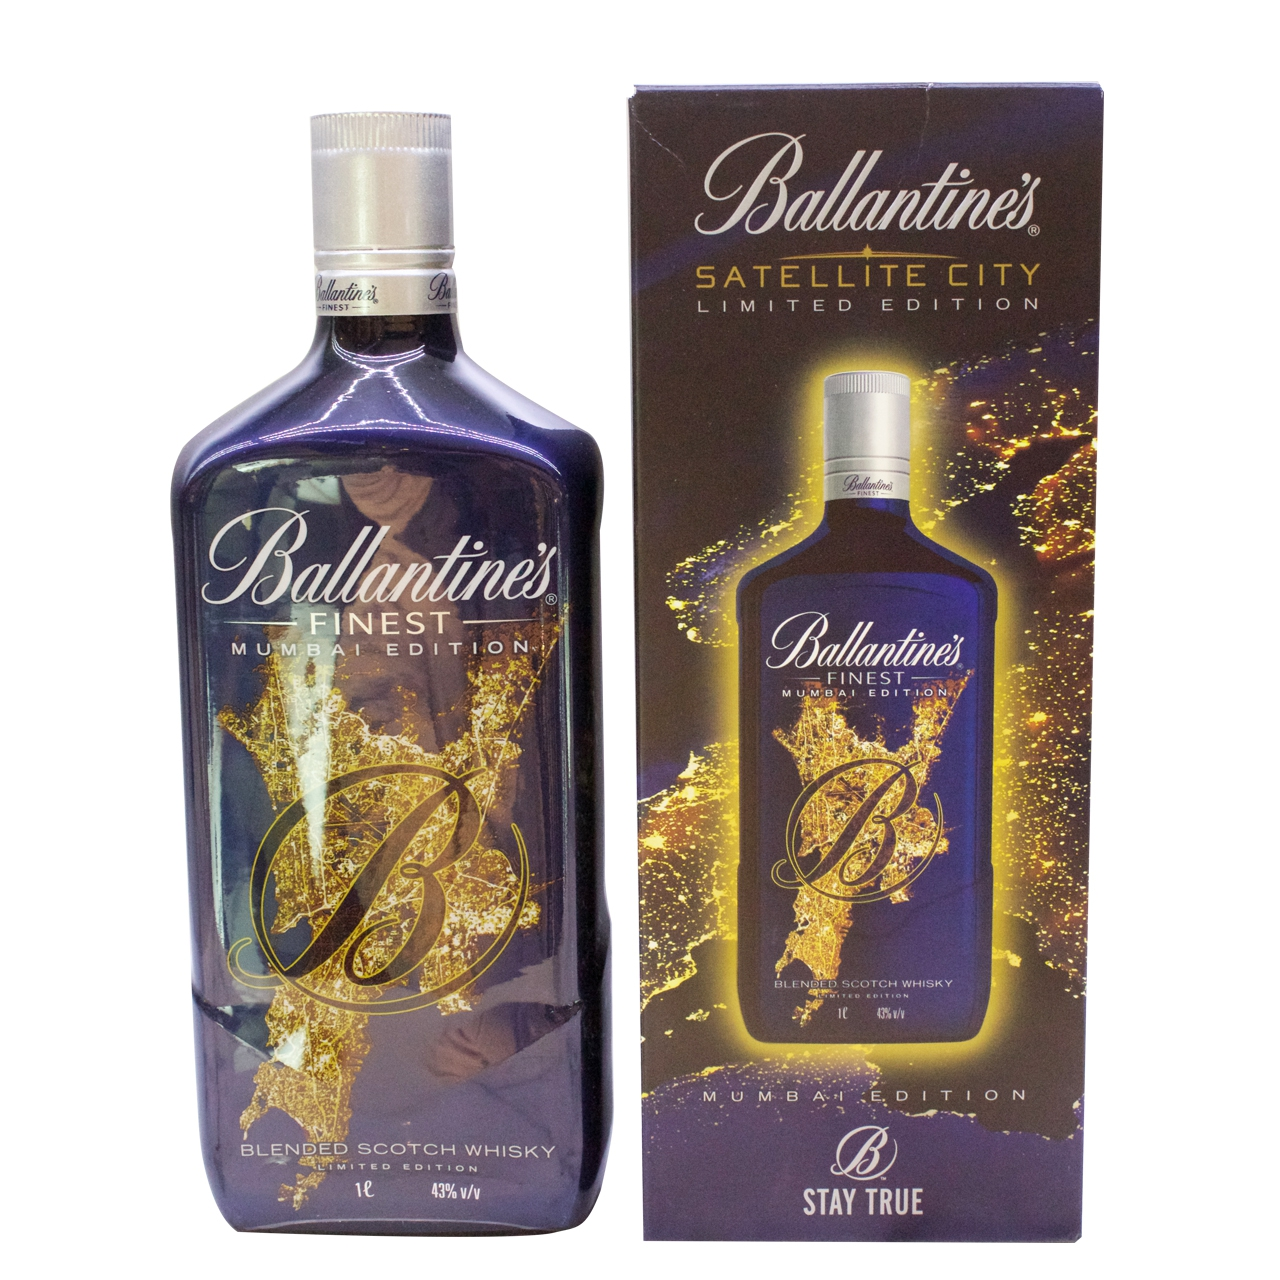 Ballantine's Mumbai Limited Edition 1L